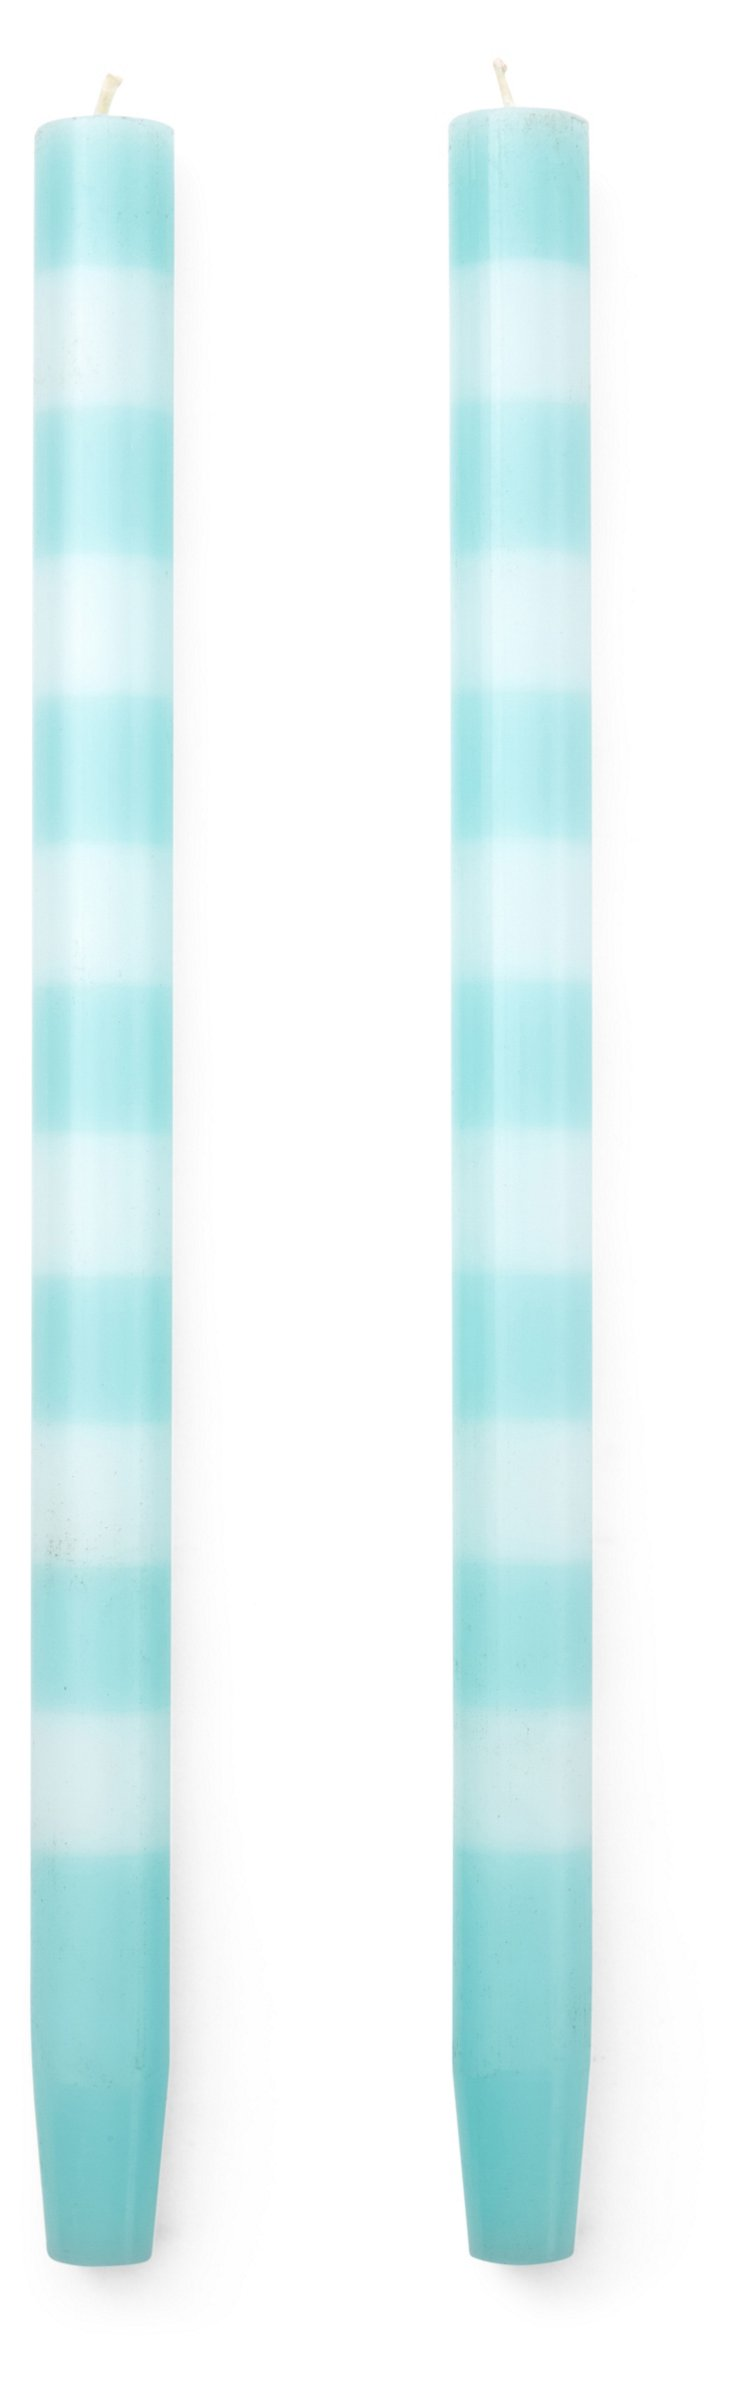 S/4 Taper Candles, Cyan/White